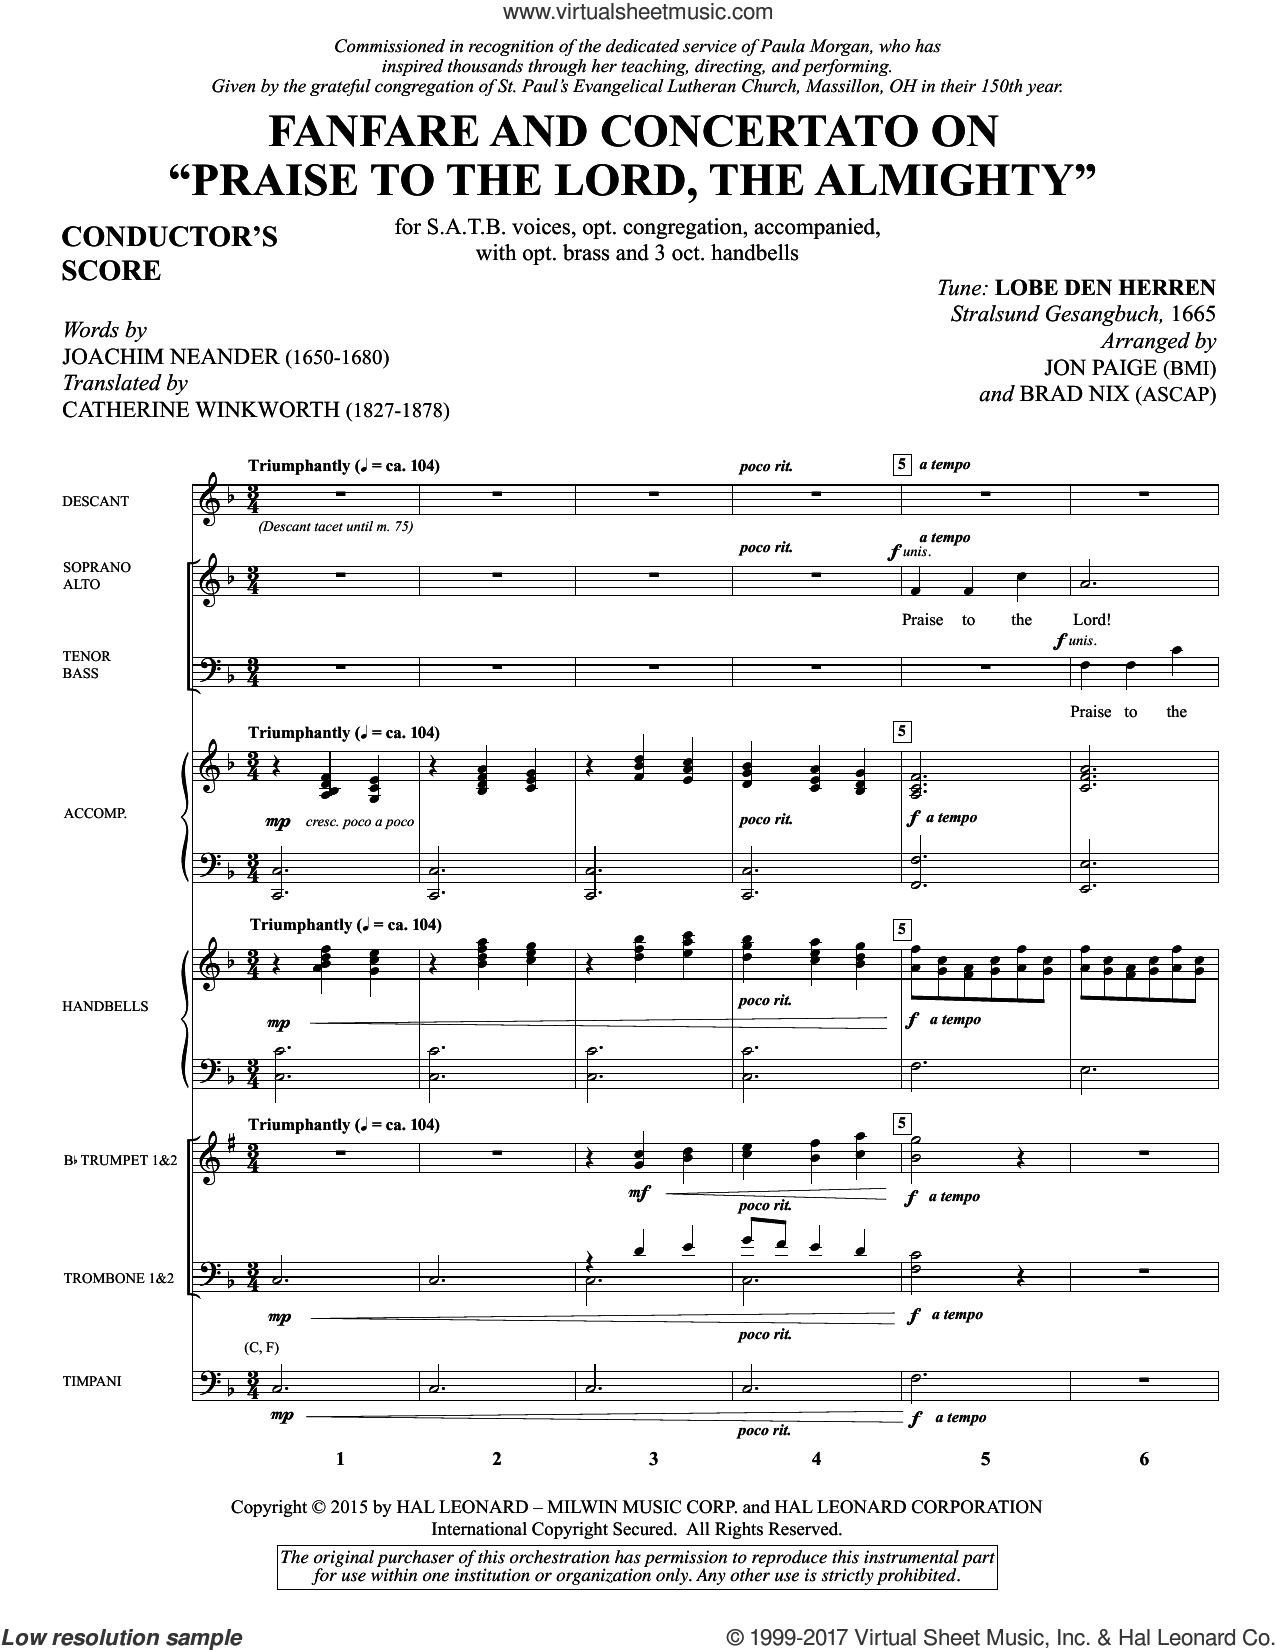 Fanfare and Concertato on 'Praise to the Lord, the Almighty' (COMPLETE) sheet music for orchestra/band by Brad Nix, Catherine Winkworth, Erneuerten Gesangbuch and Joachim Neander, intermediate skill level